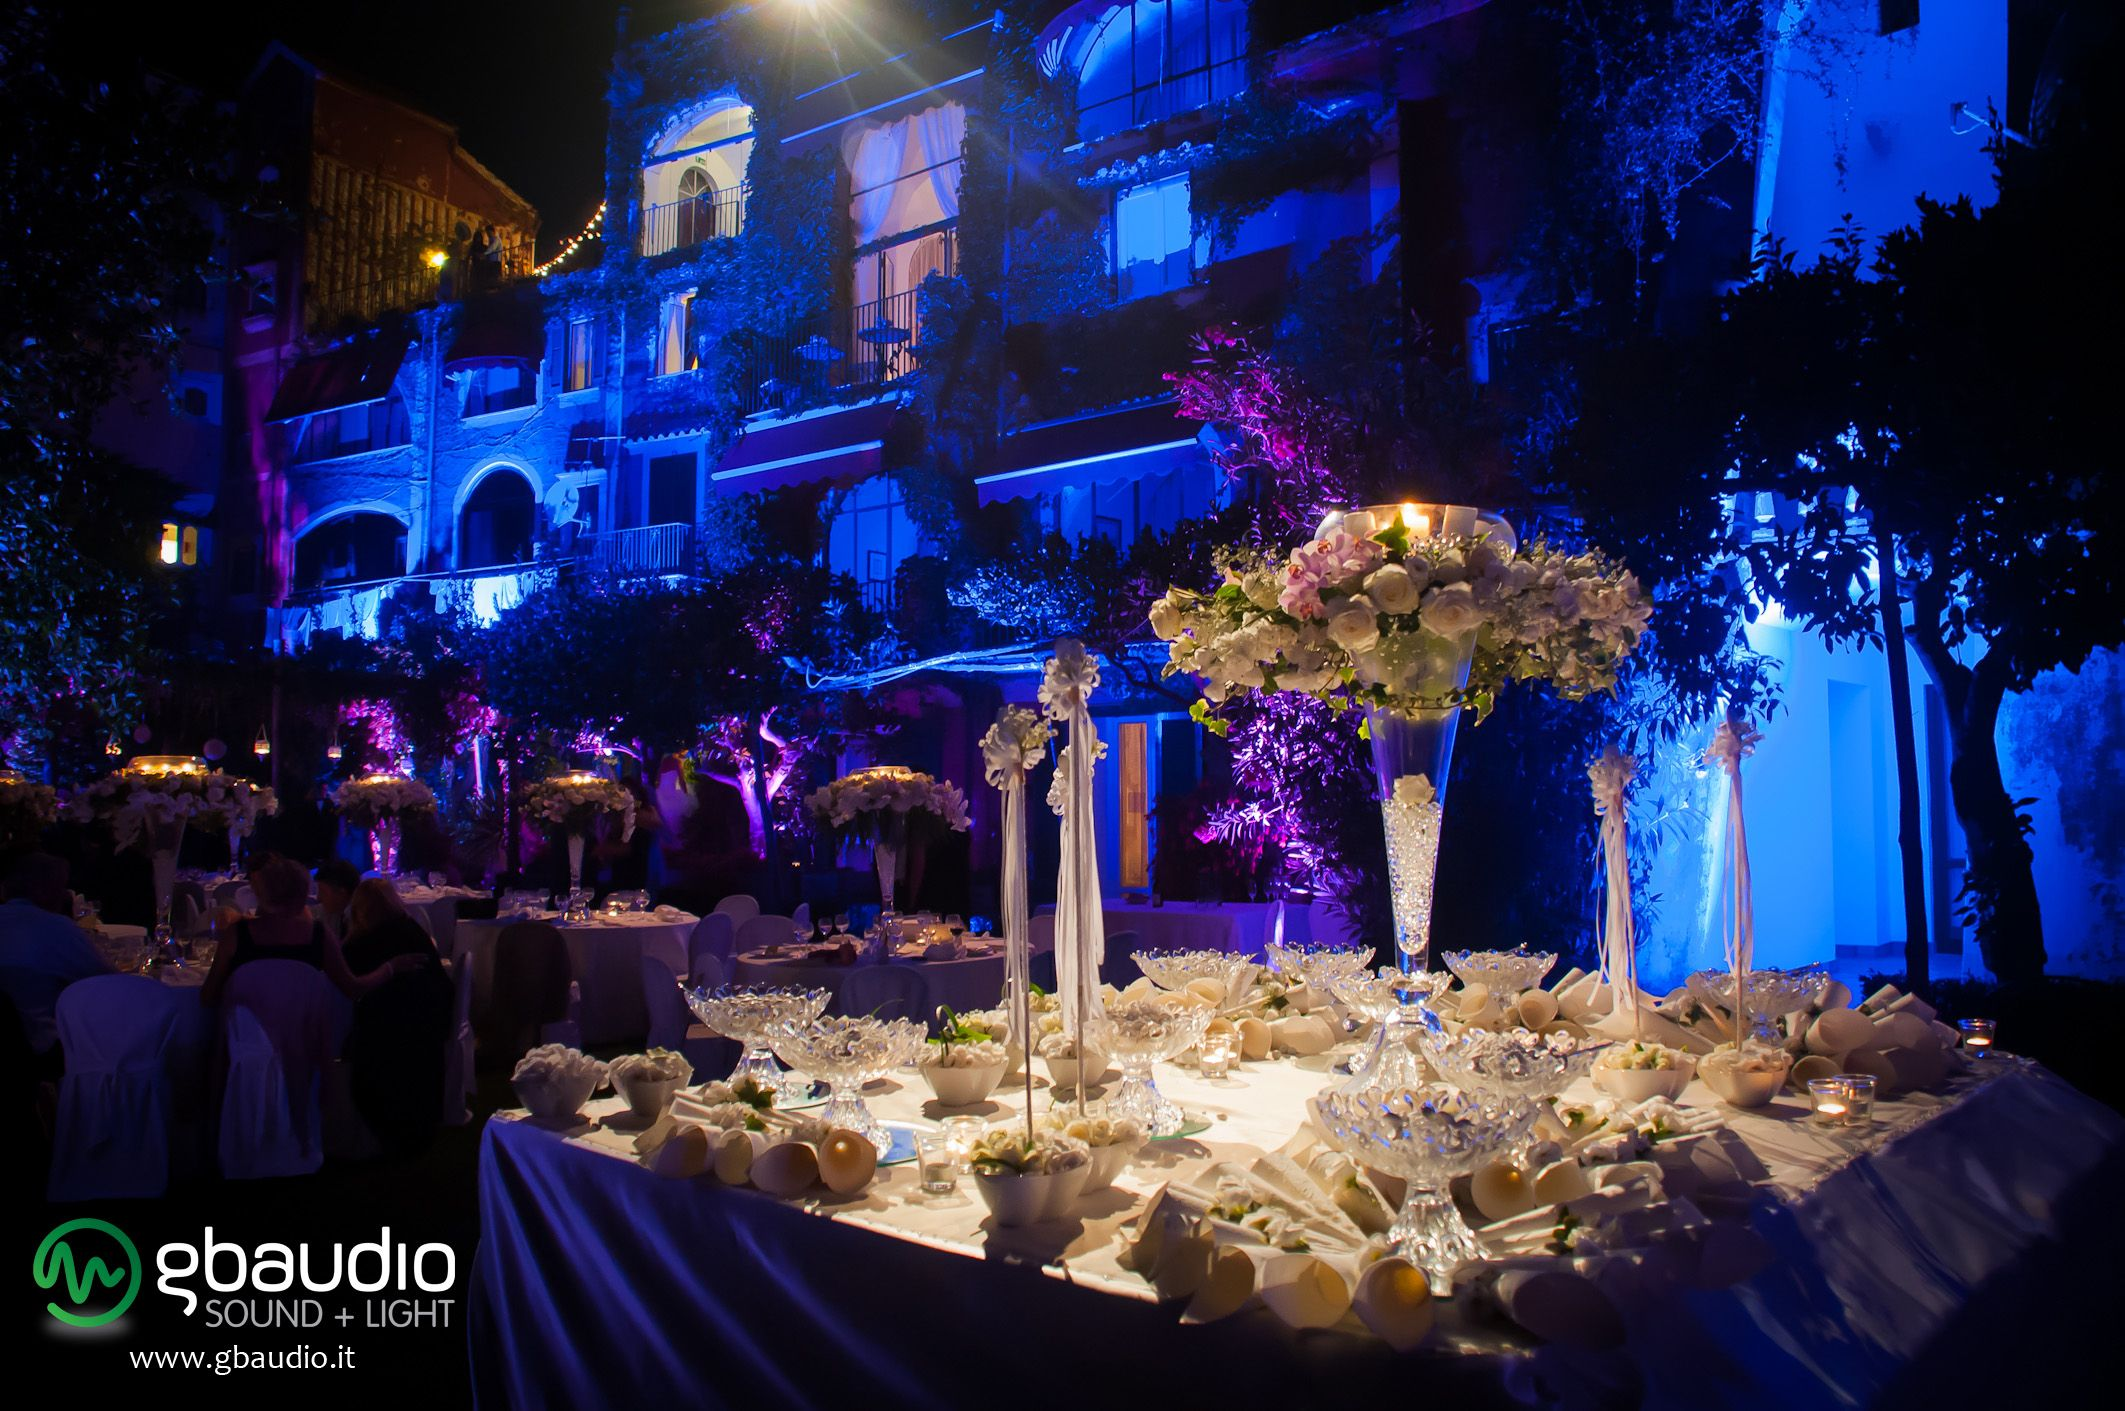 Lighting And Sound For Wedding At Hotel Palumbo Ravello Italy